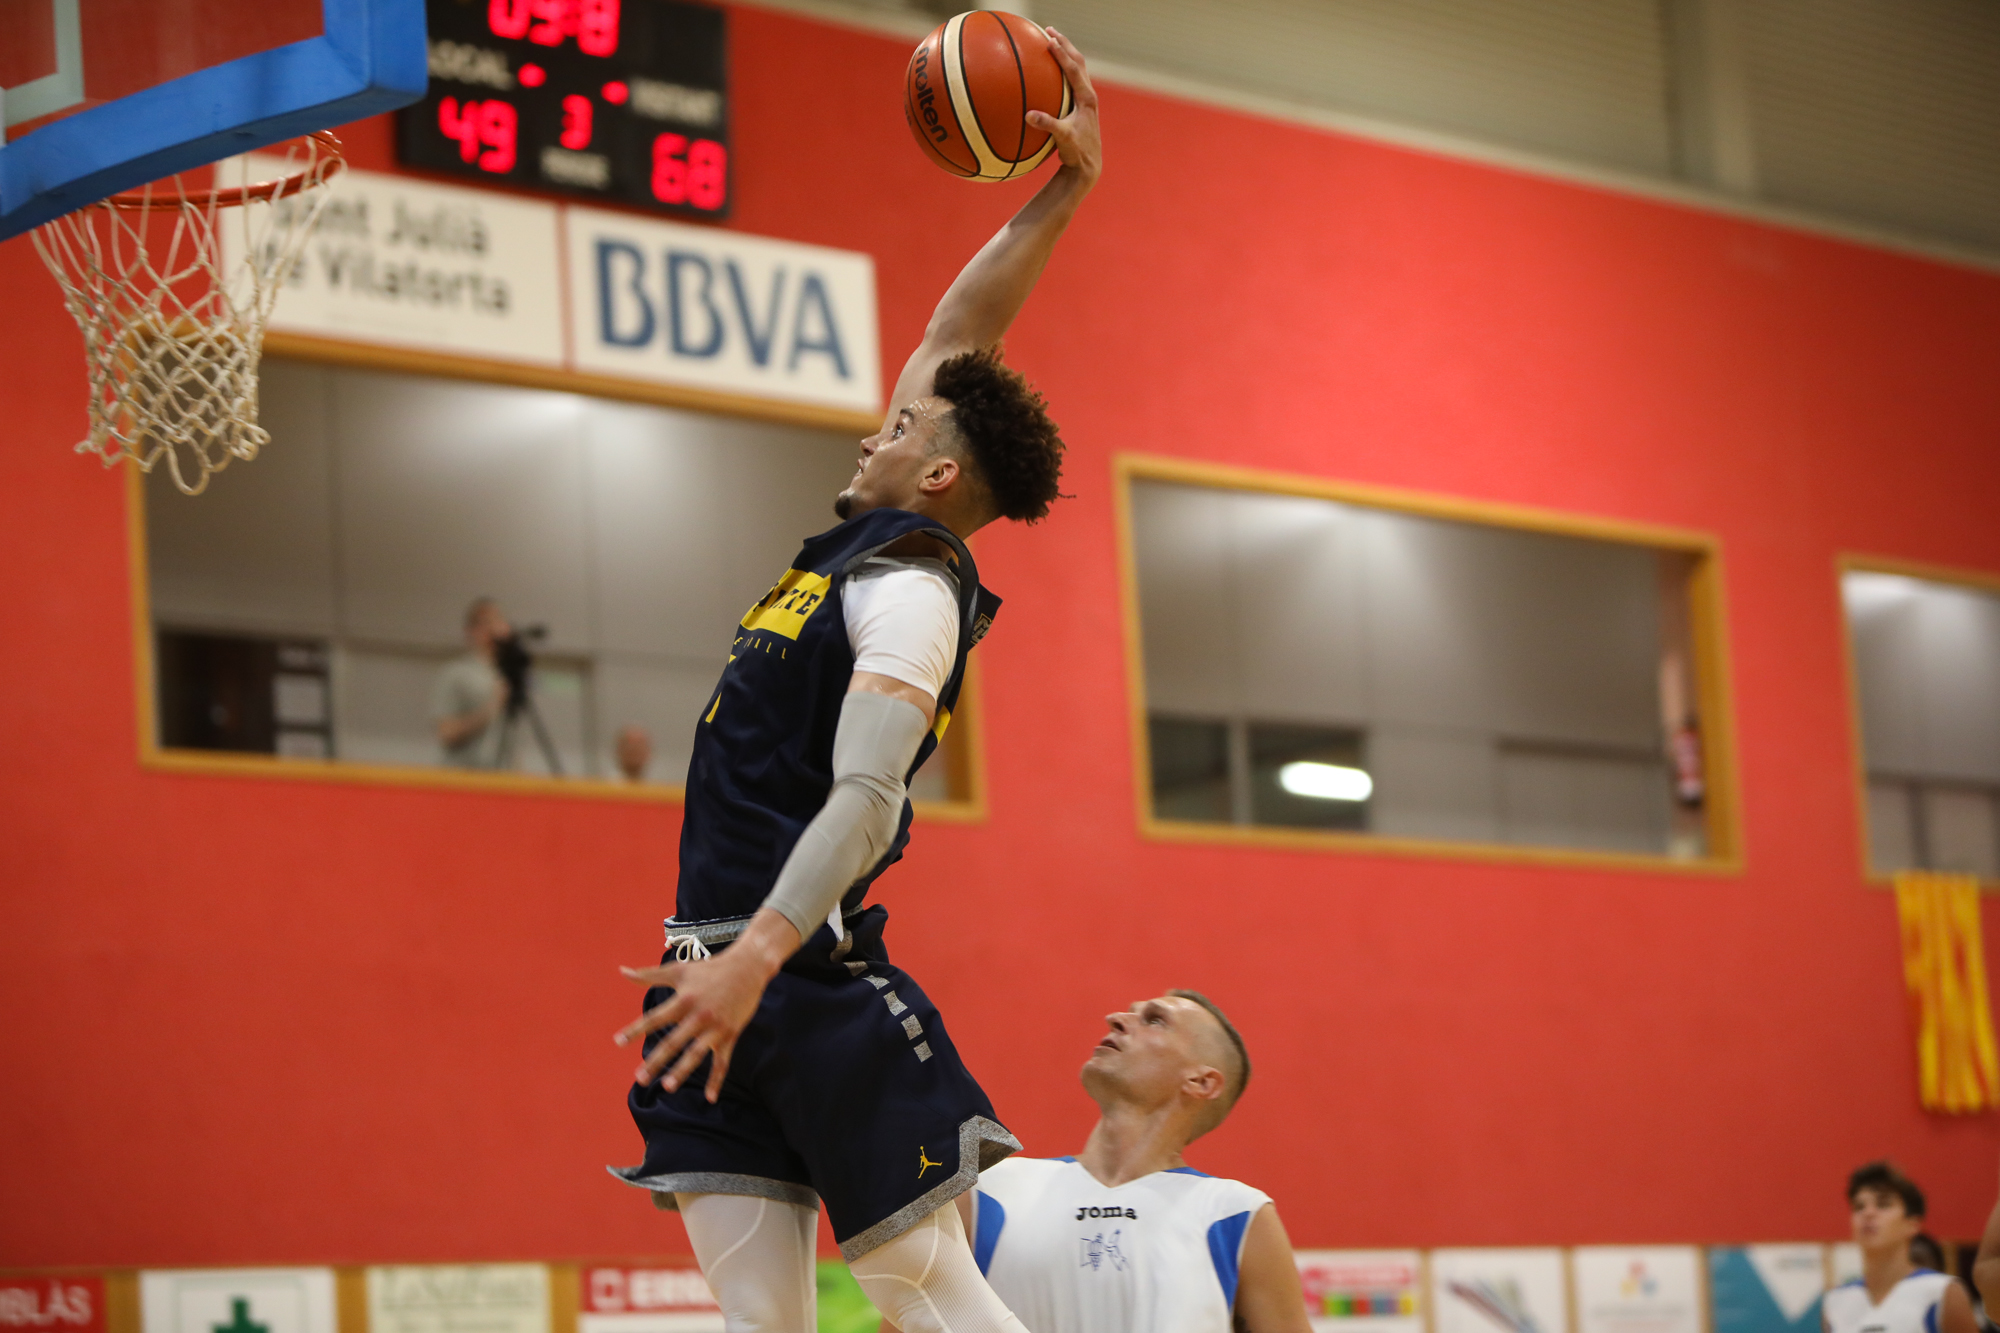 Marquette forward Brendan Bailey goes up for a dunk during a game in Spain this past summer.